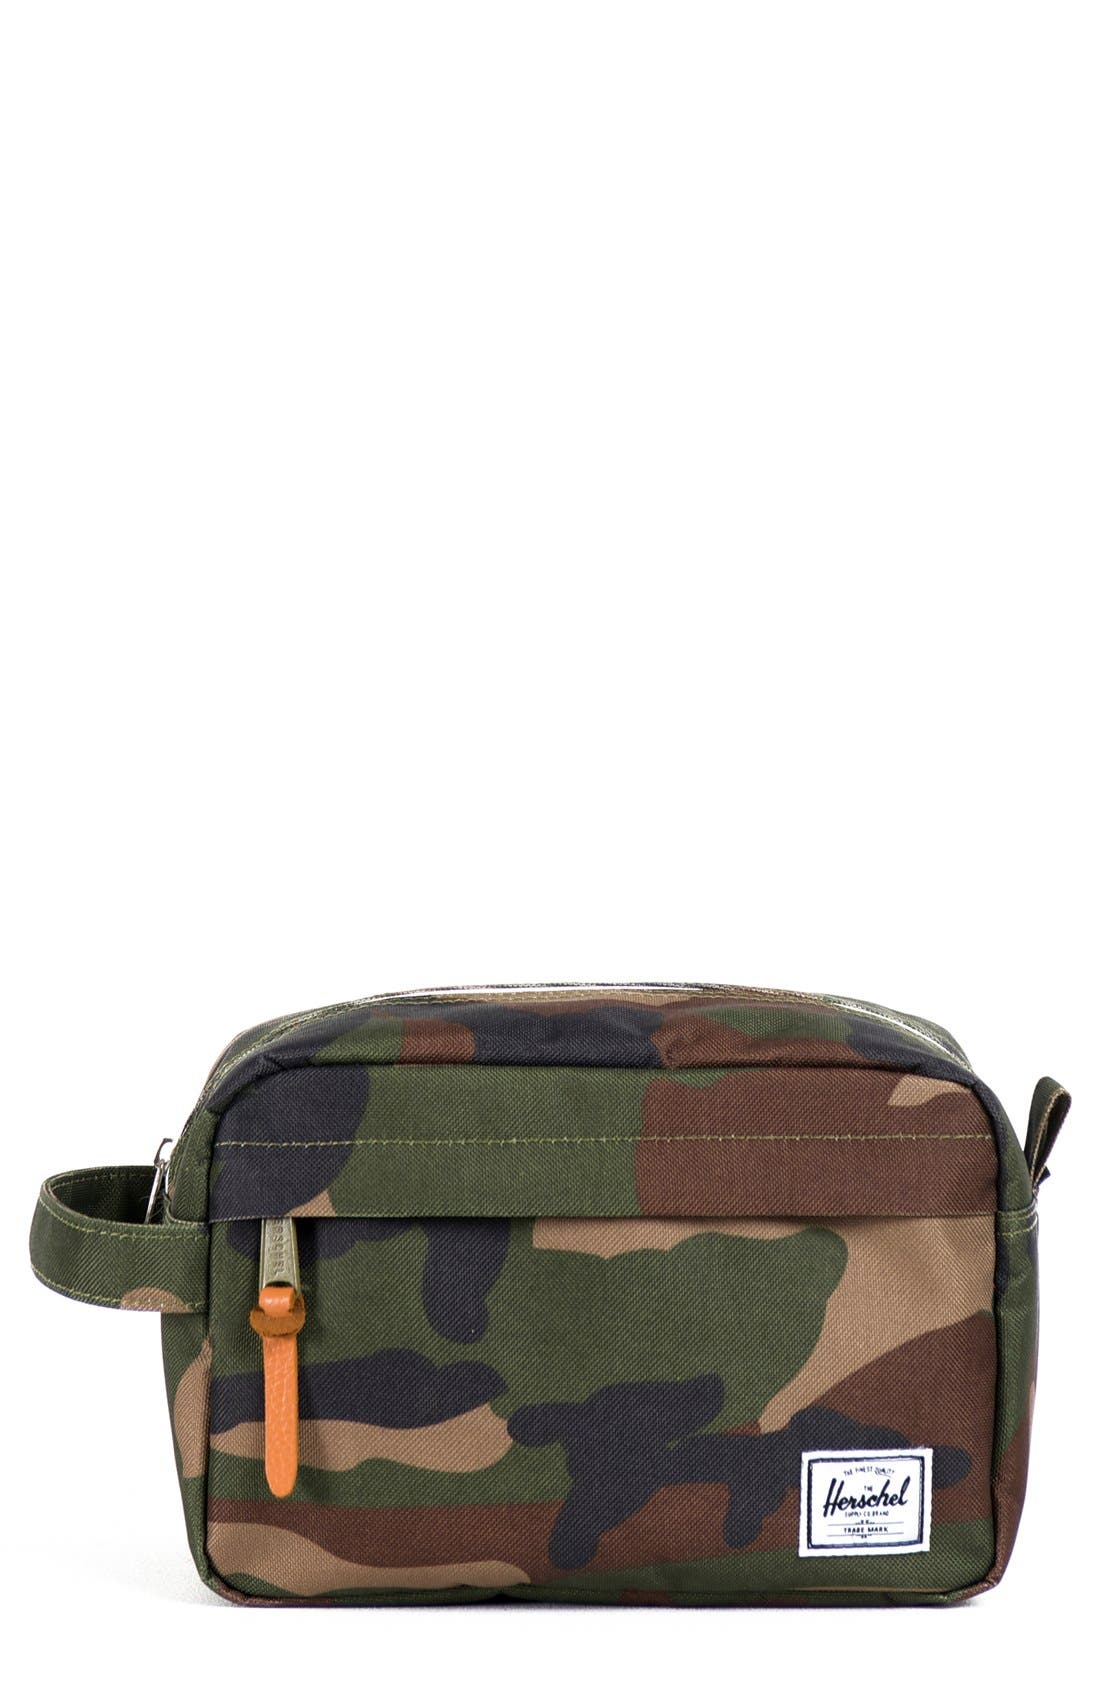 'Chapter' Toiletry Case,                             Main thumbnail 1, color,                             WOODLAND CAMO